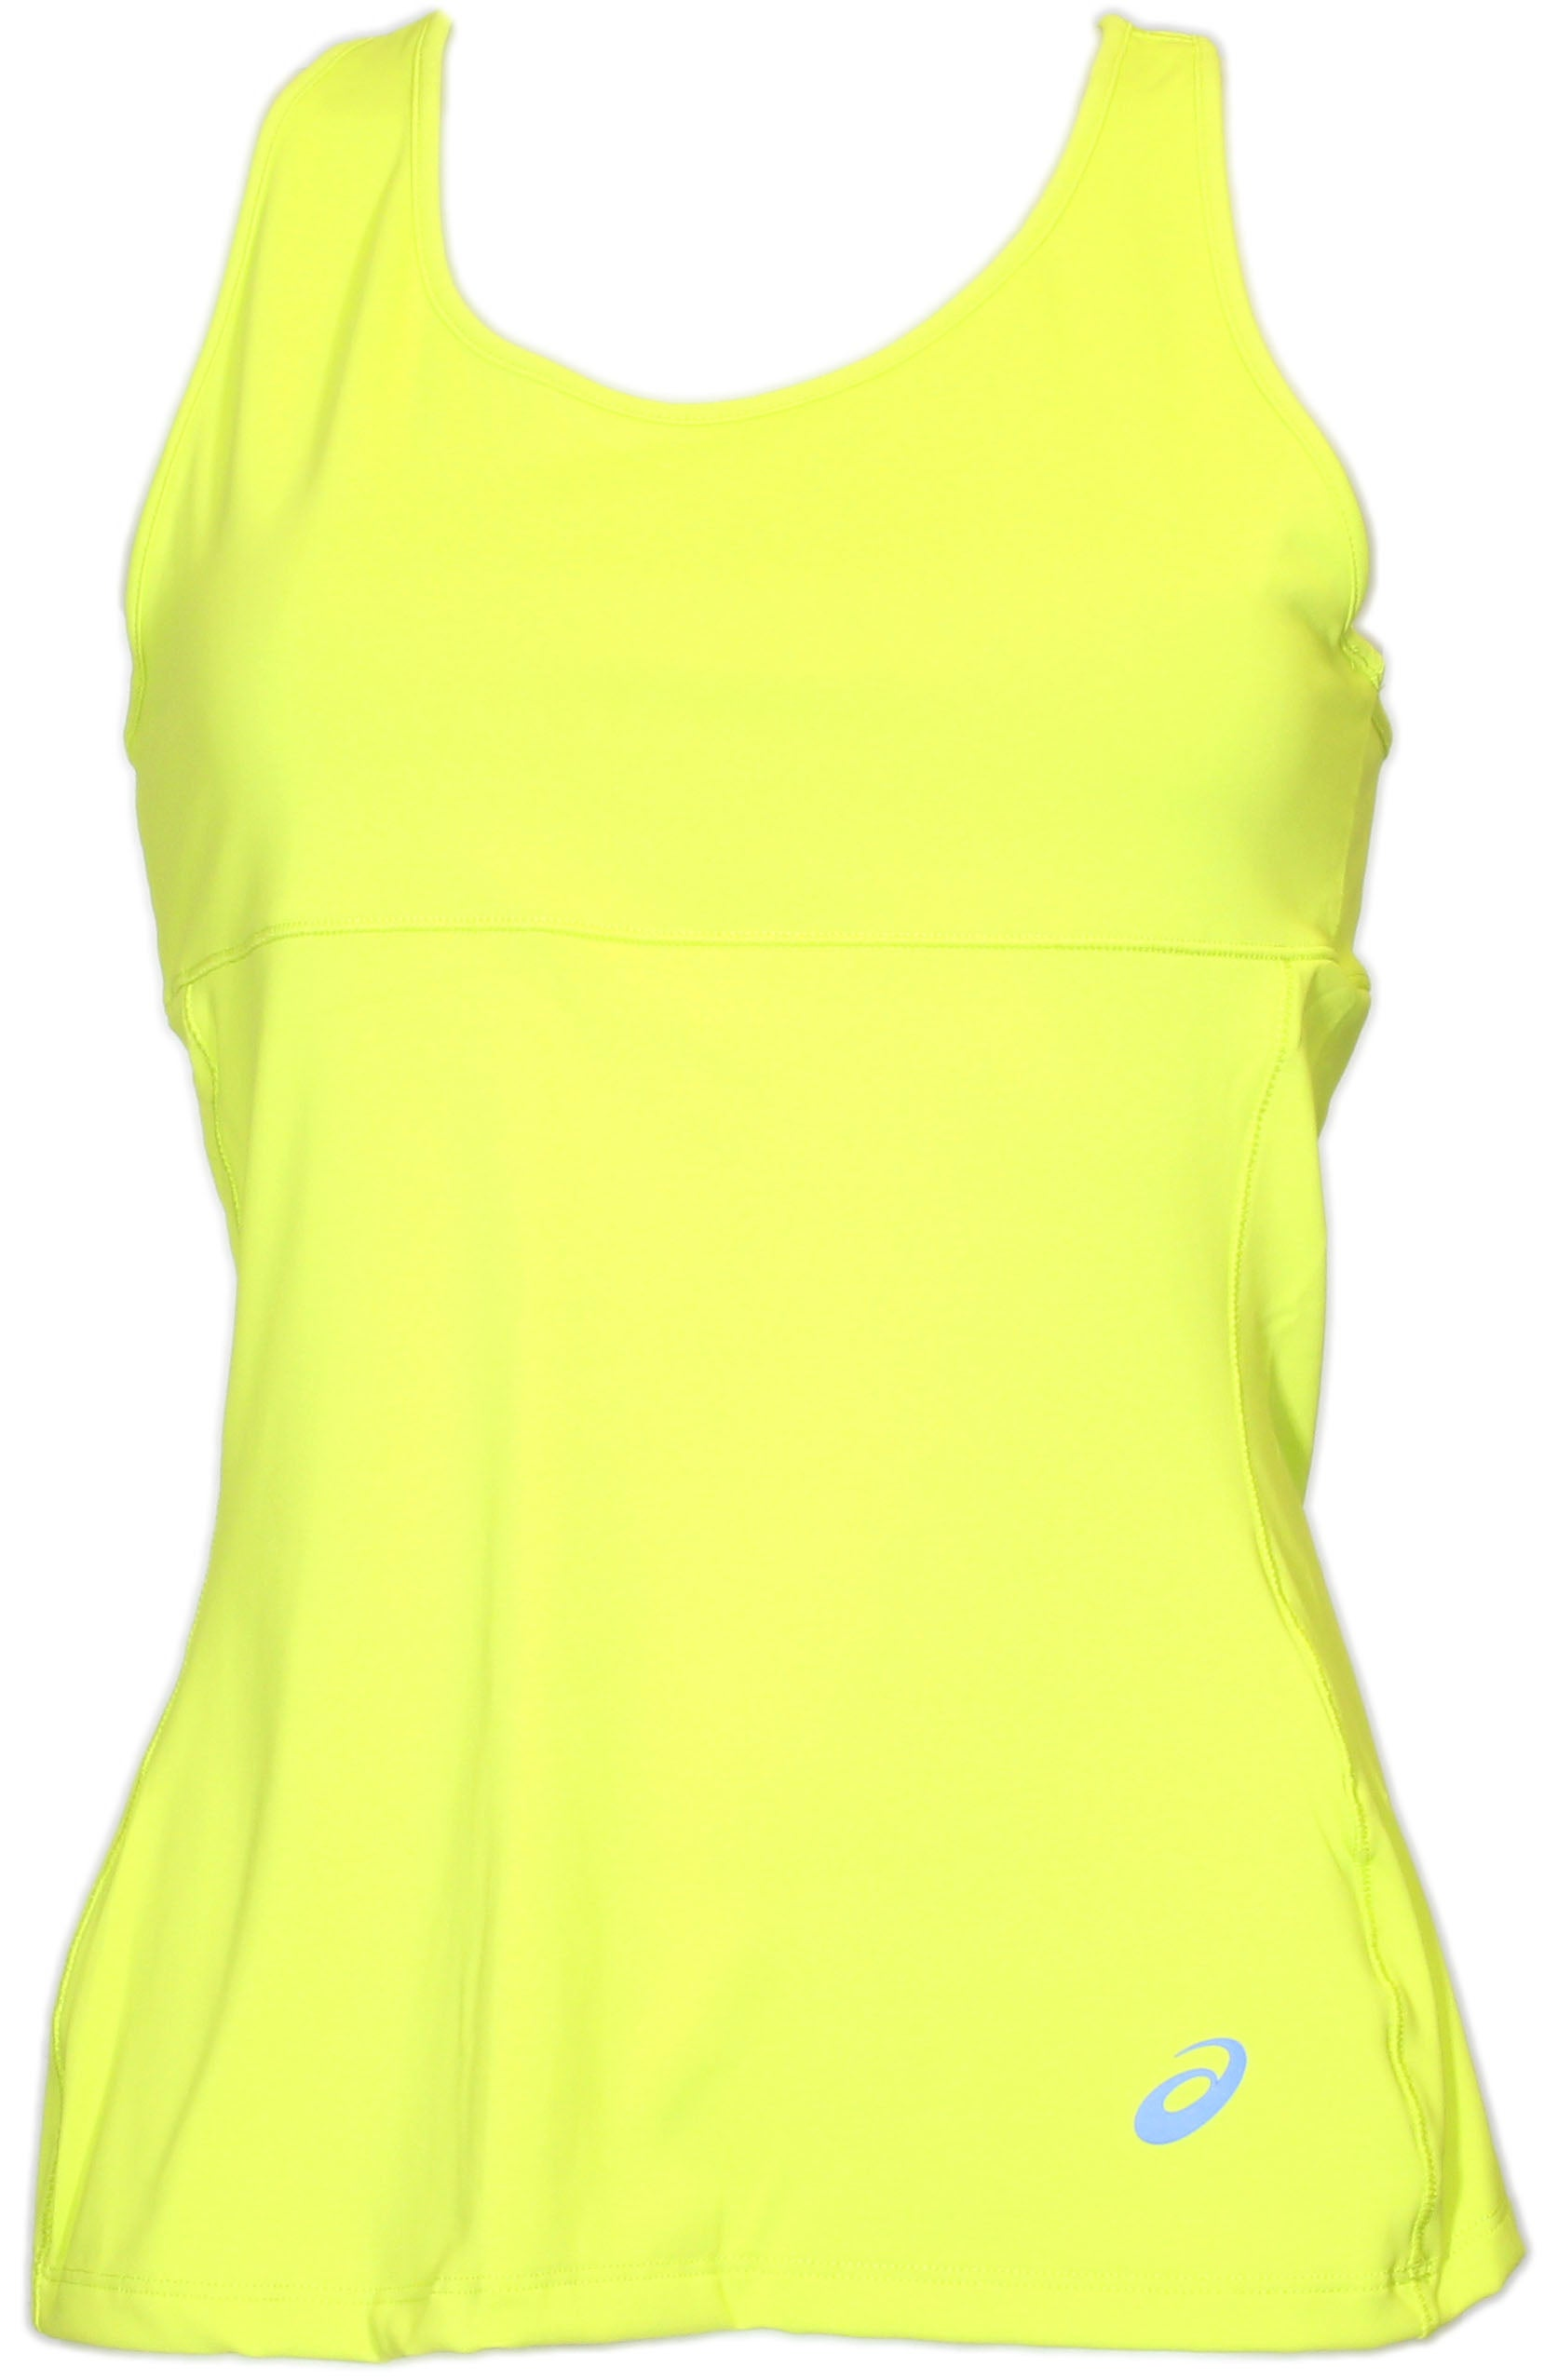 ASICS Racerback Top Yellow - Womens  - Size Xl